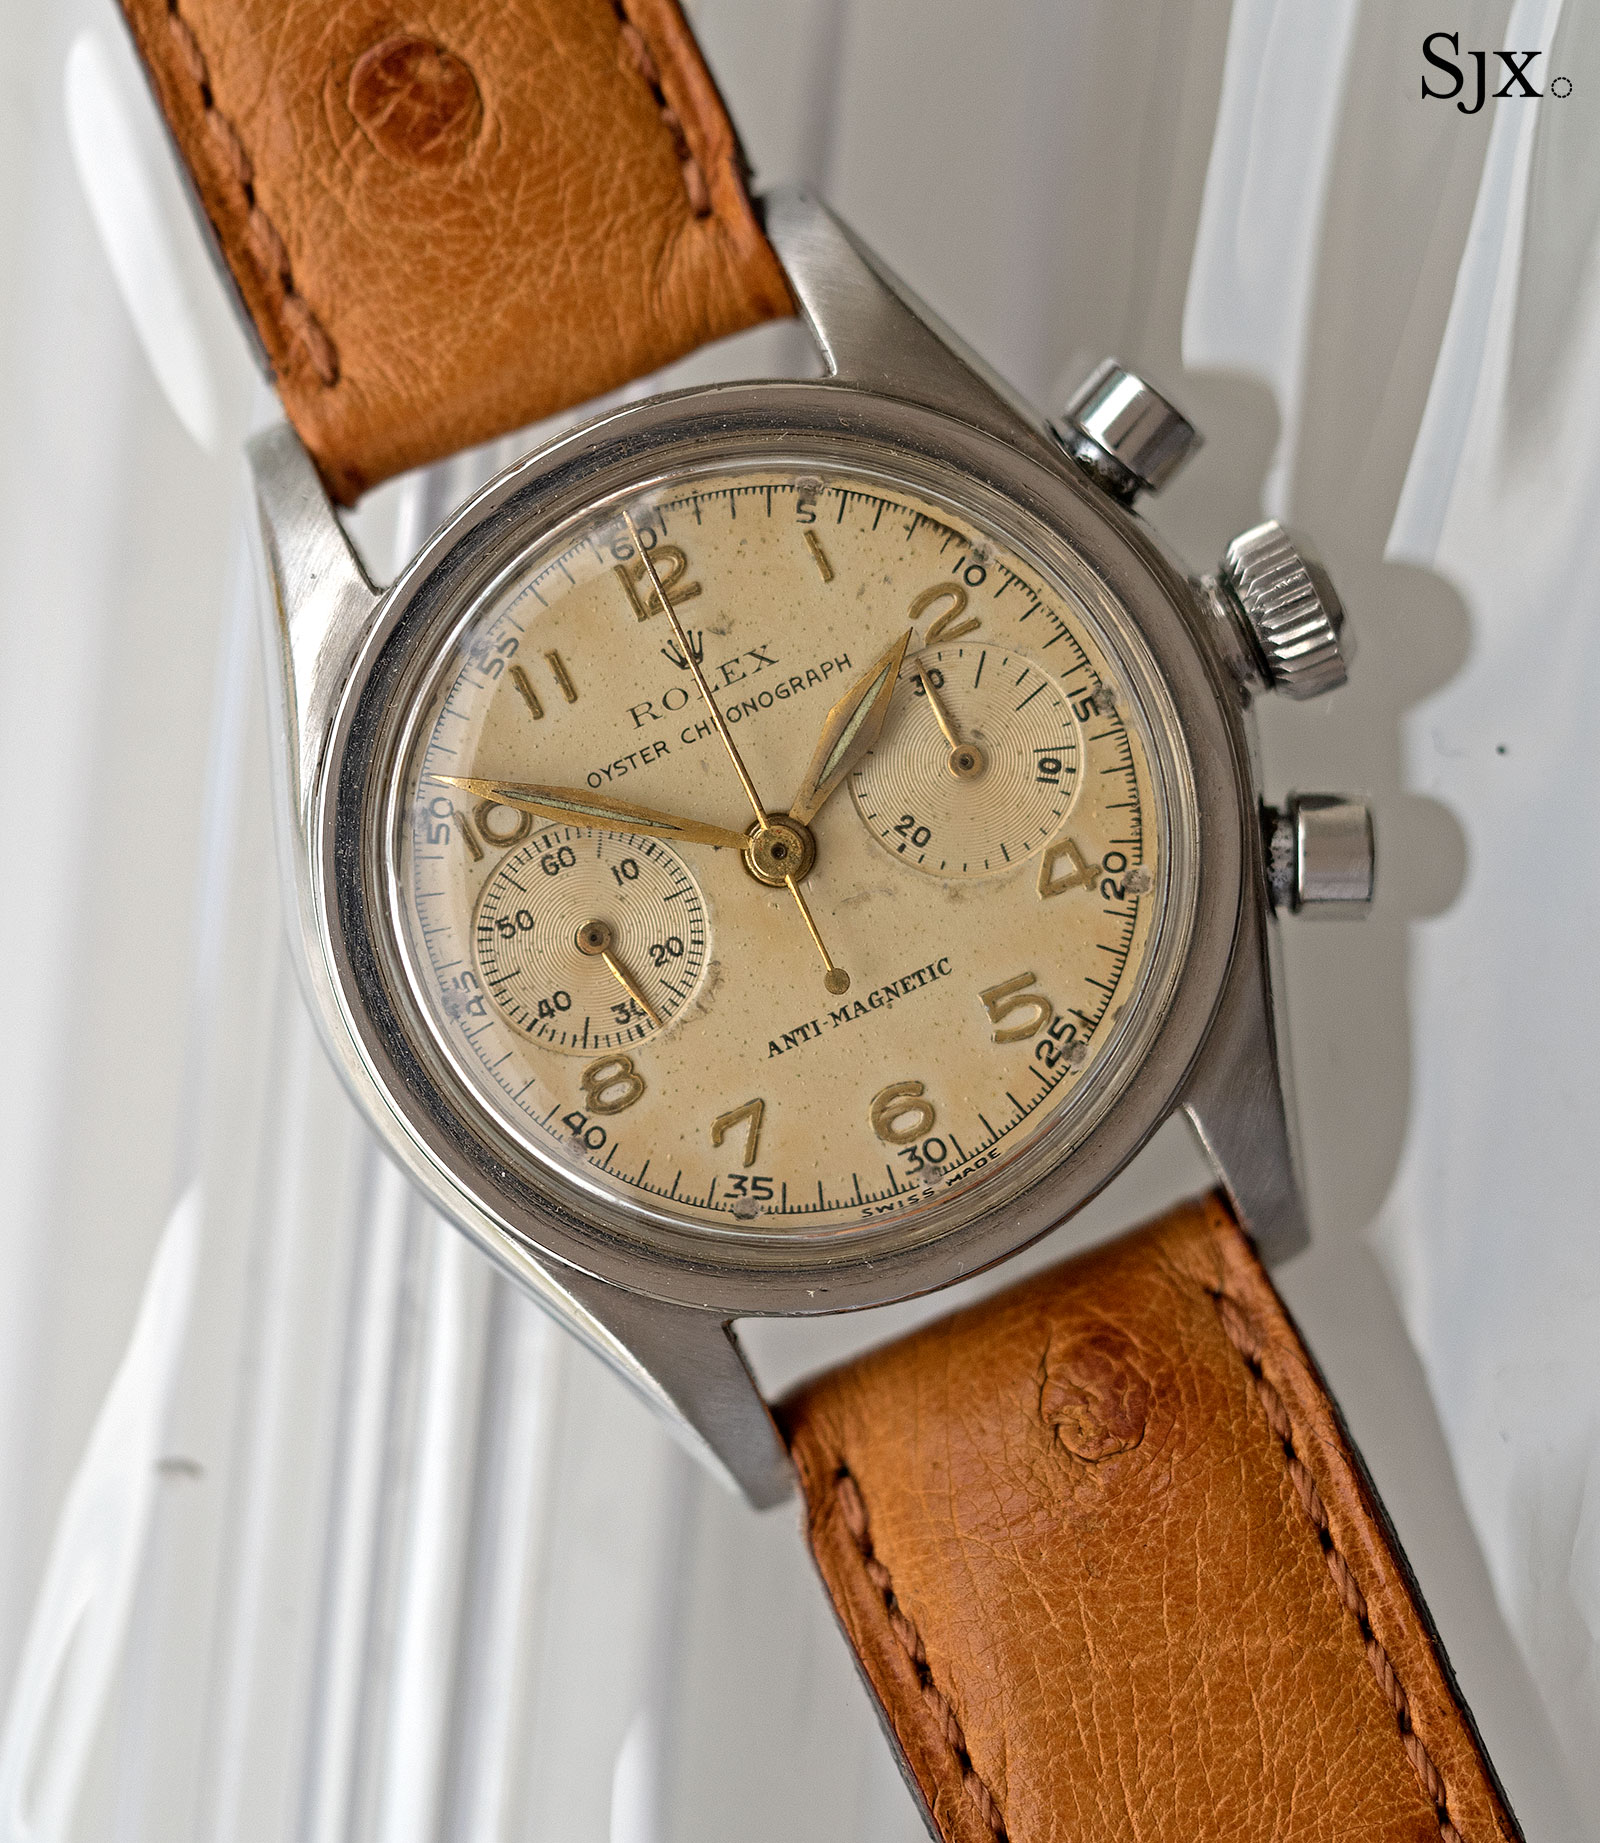 Rolex 3481 chronograph anti-magnetic 2